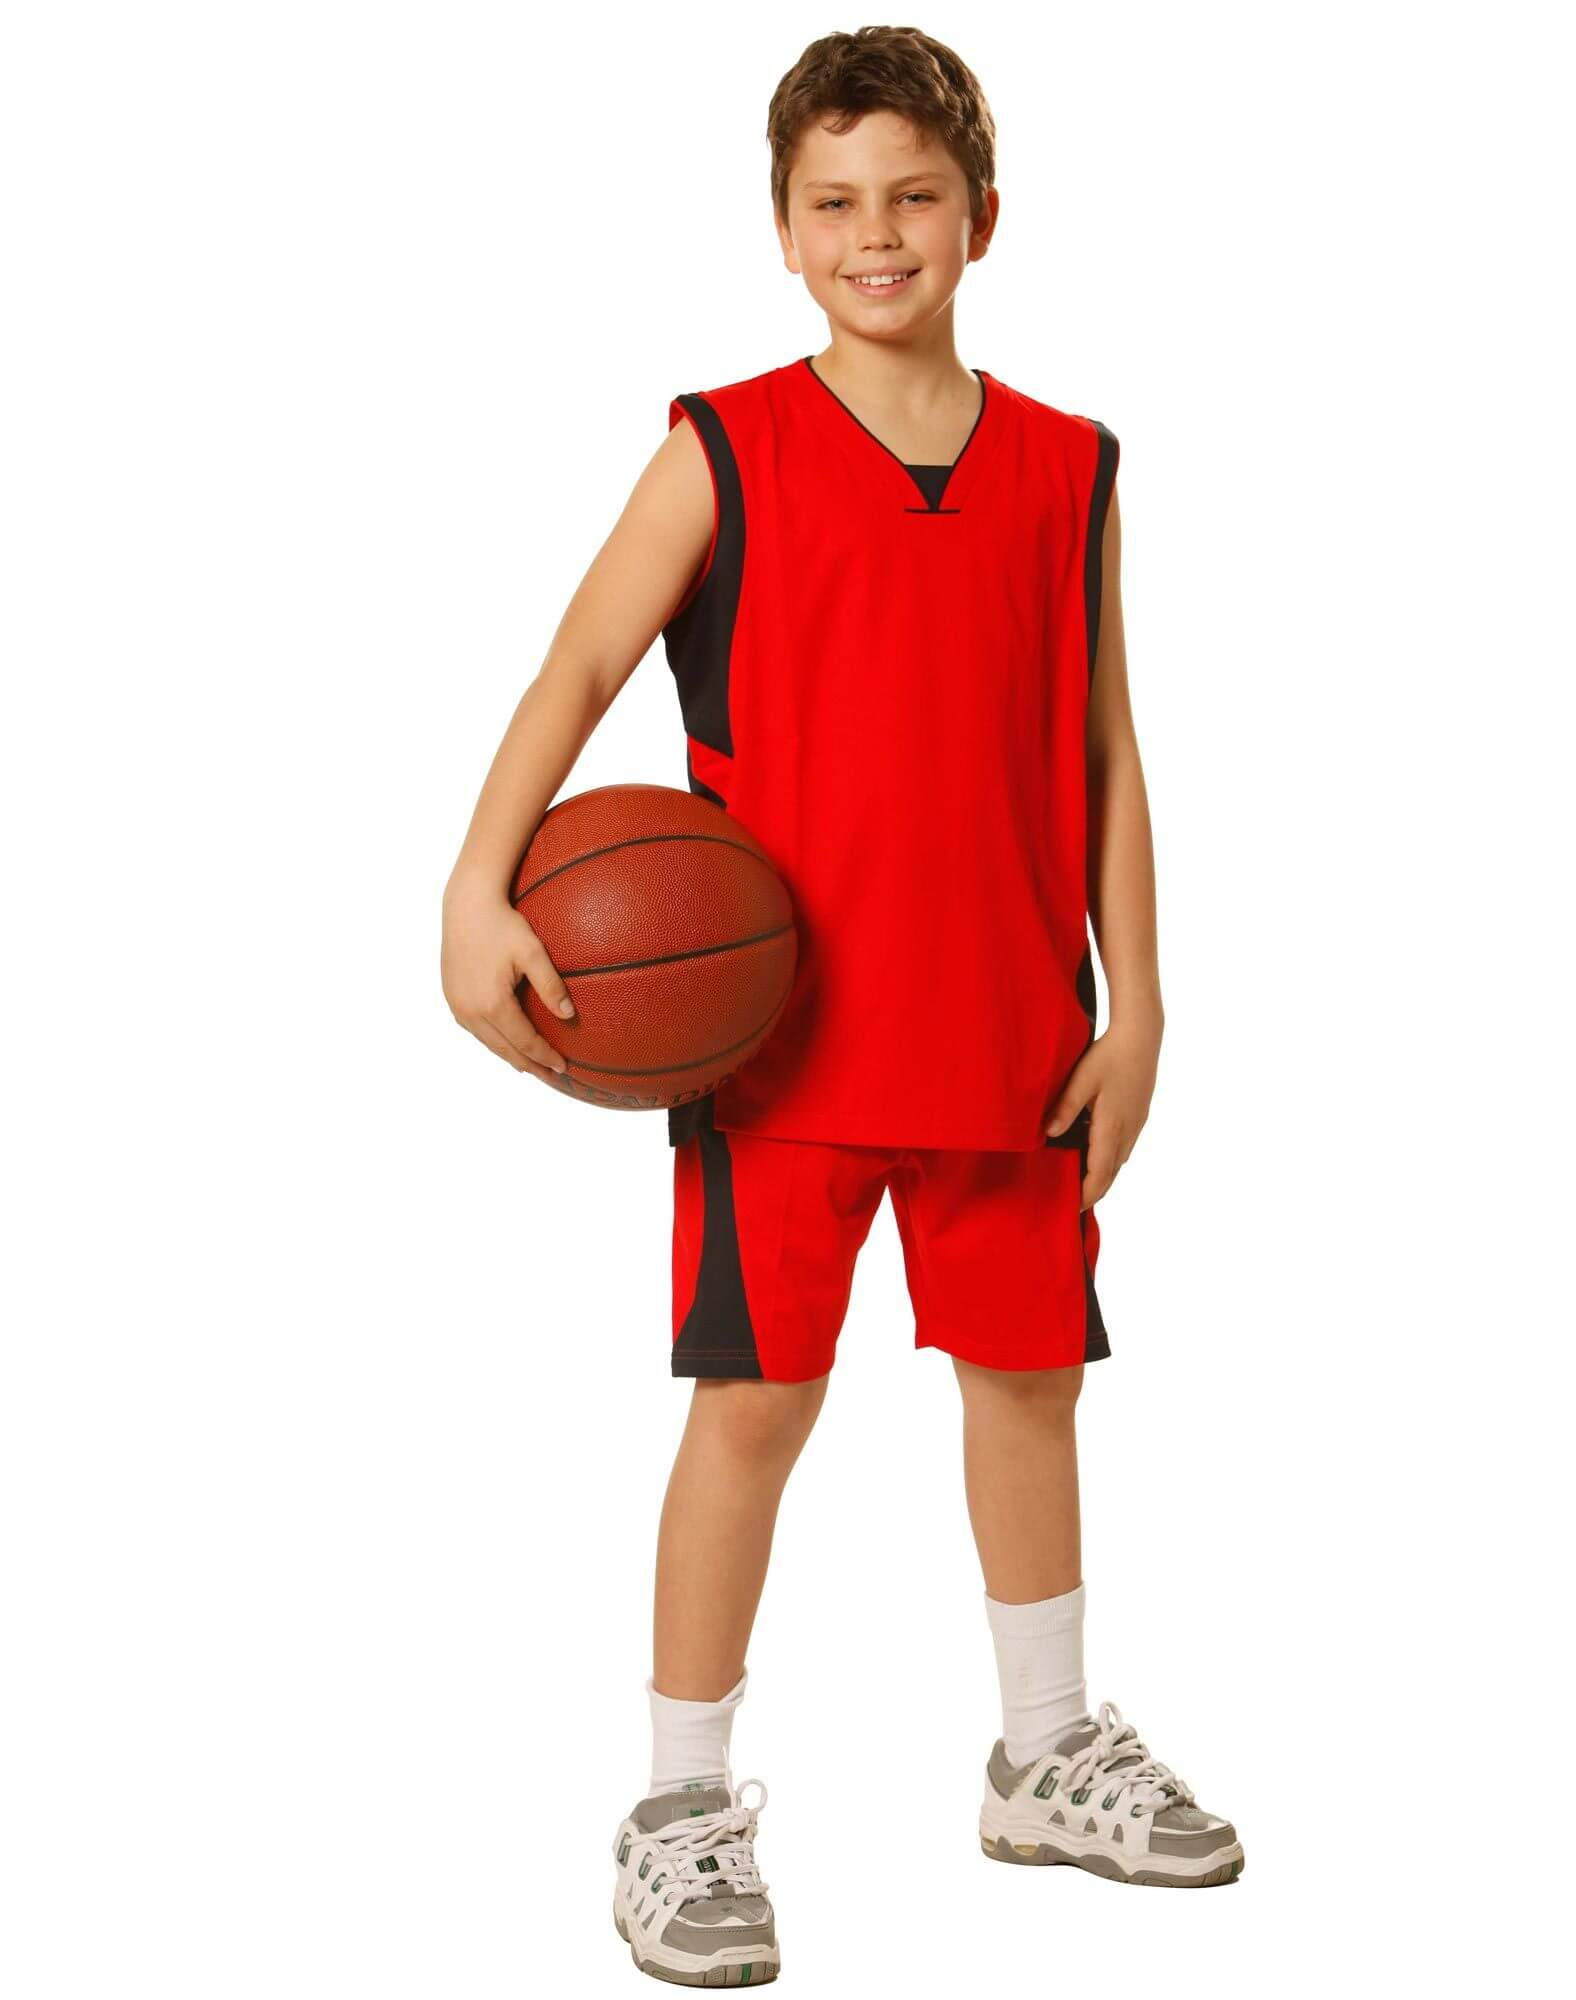 Kids Basketball Jerseys Manufacturers in Solapur